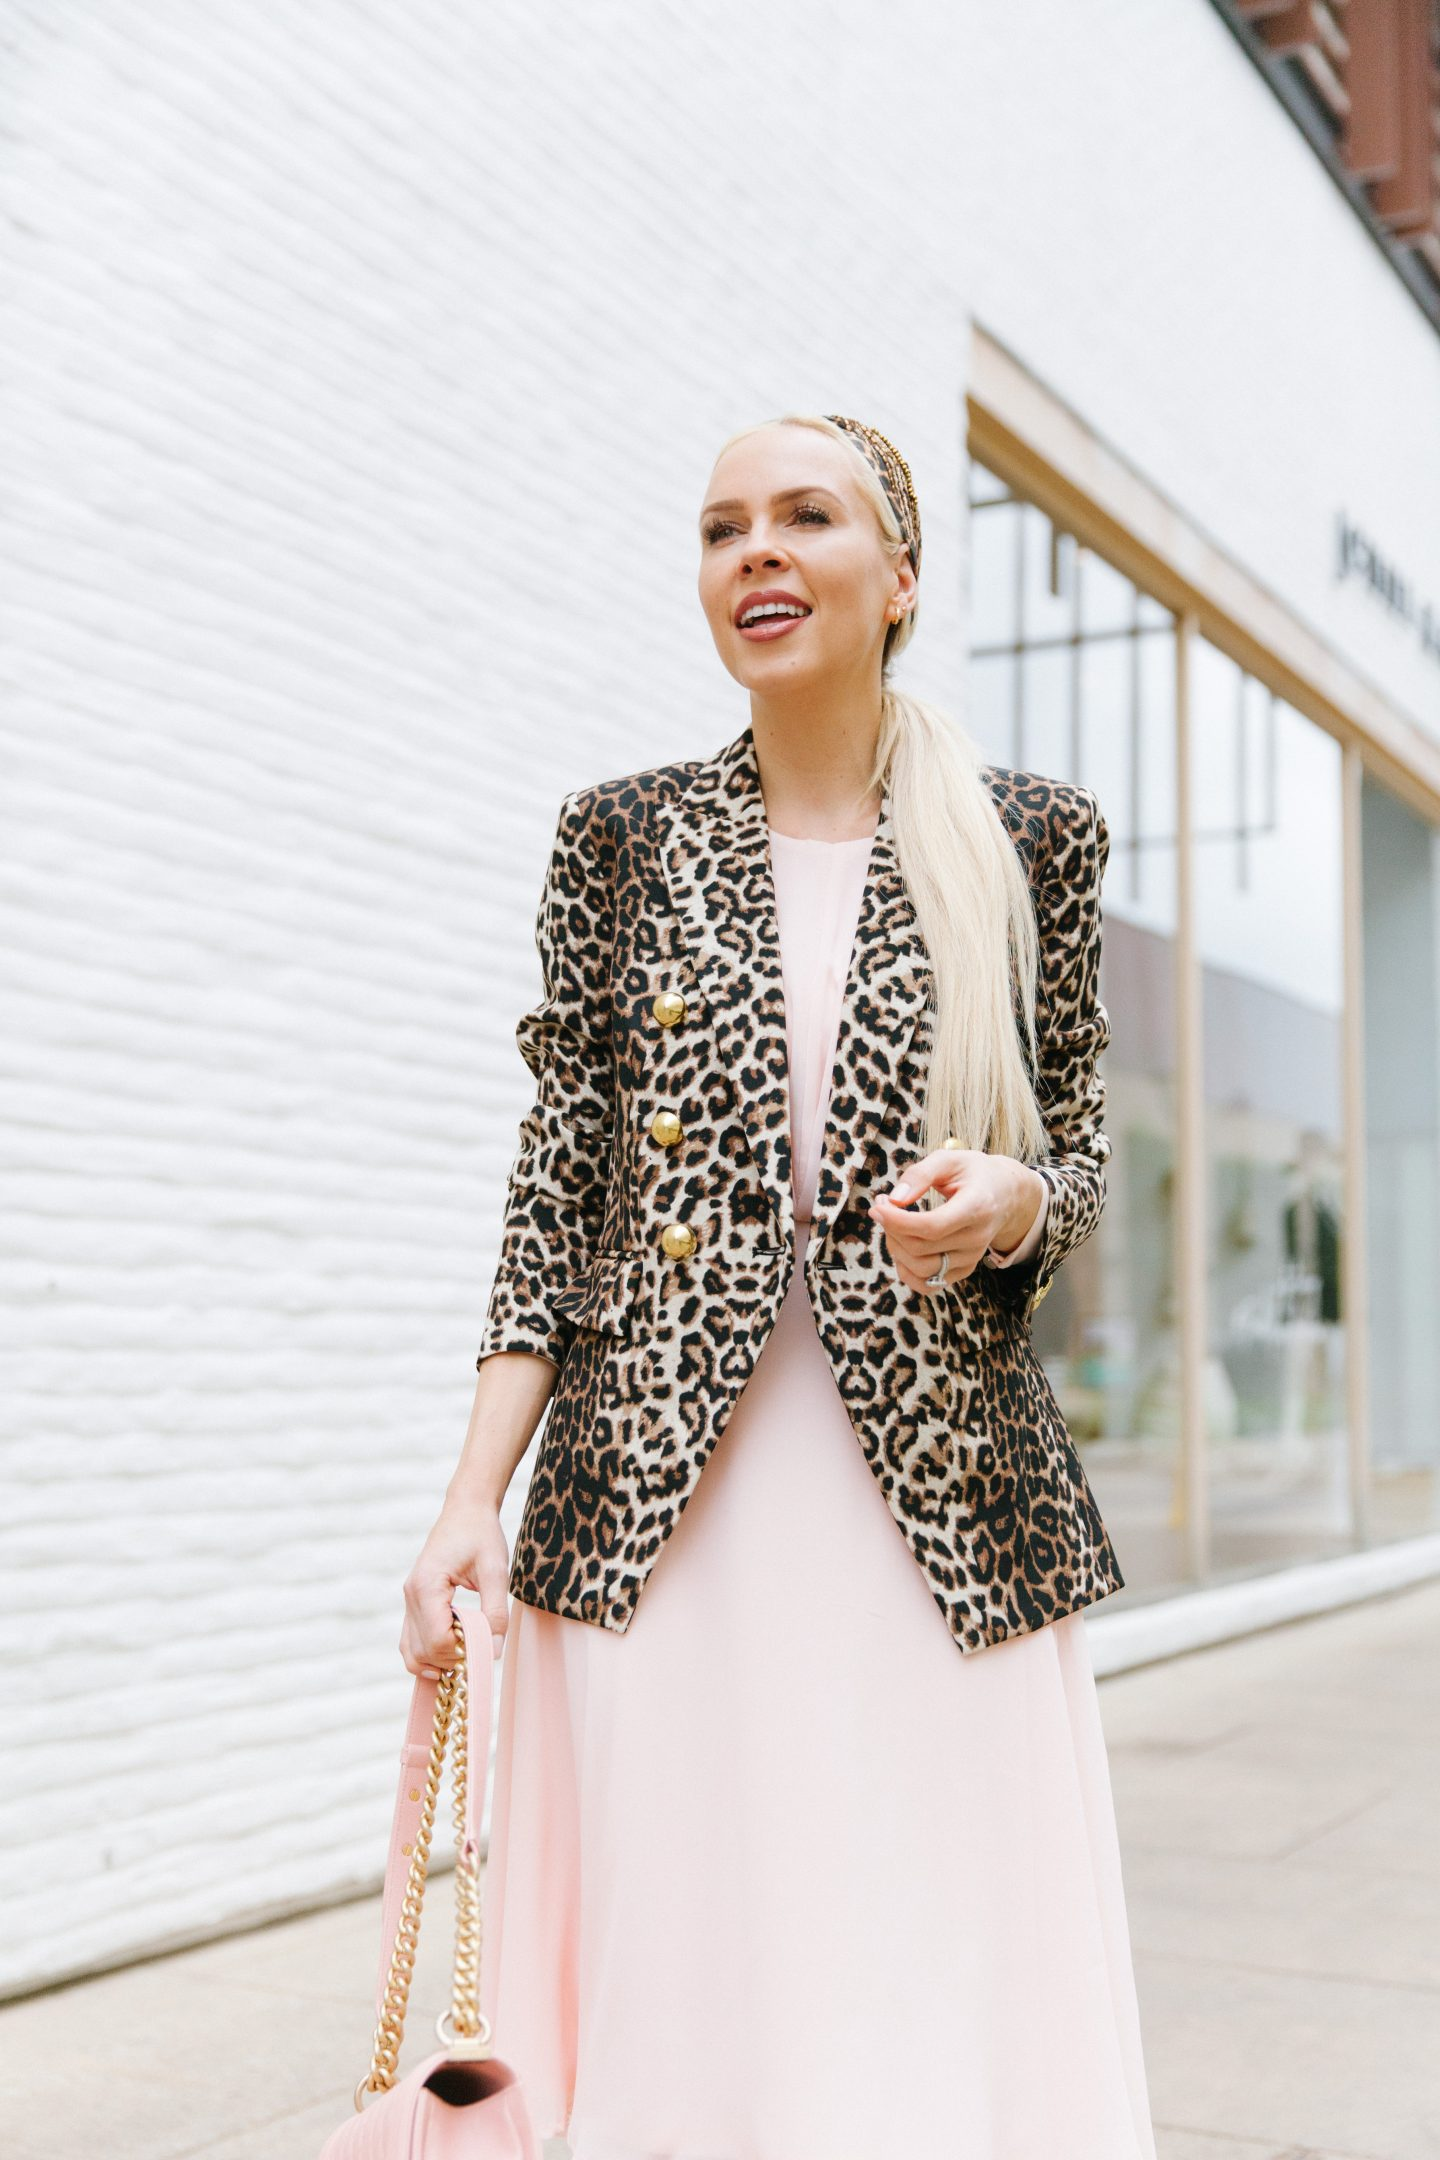 Top US fashion blog, Lombard and Fifth, features her styling tips to take the Leopard Print Fashion into Spring: image of a woman wearing a Veronica Beard leopard jacket, JC Penney fit and flare dress, Namjosh leopard headband, and an Anthropologie crossbody bag